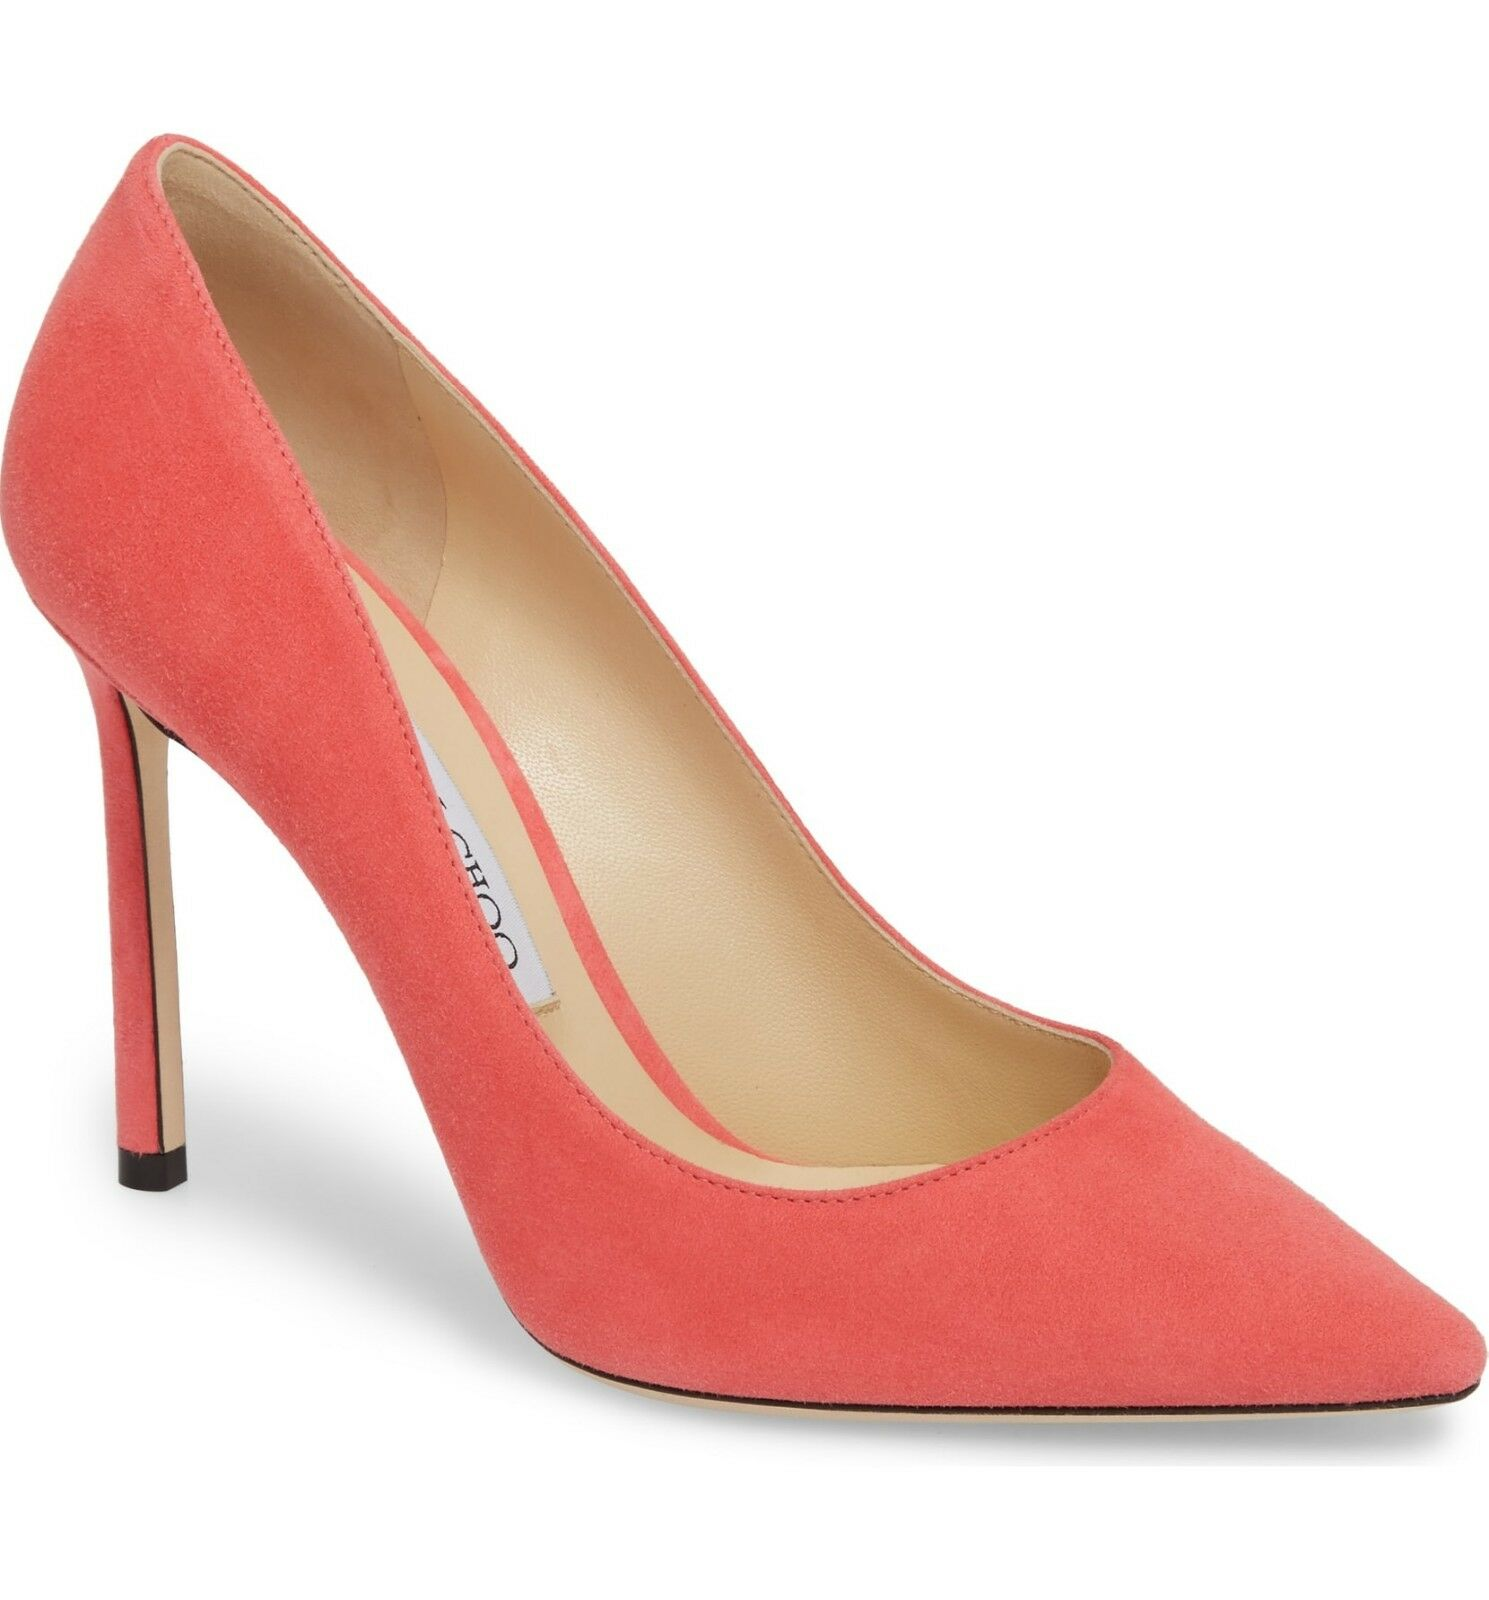 NIB Jimmy Choo ROMY Pointy Toe Pump Heel Heel Heel shoes FLAMINGO PINK Suede 38 -7.5 3d6ec4